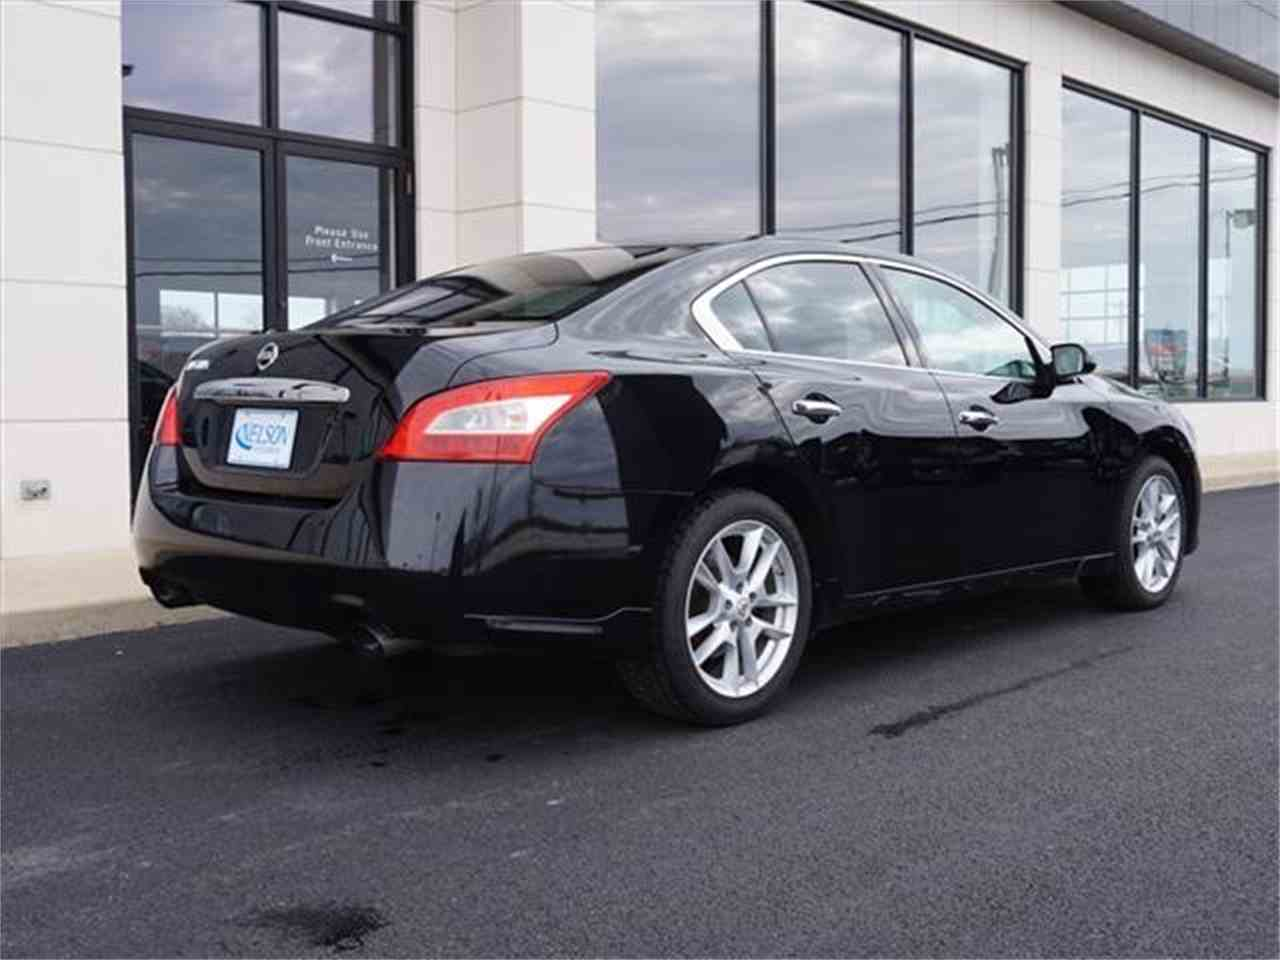 Large Picture of 2010 Nissan Maxima located in Ohio - $9,999.00 - KHAD